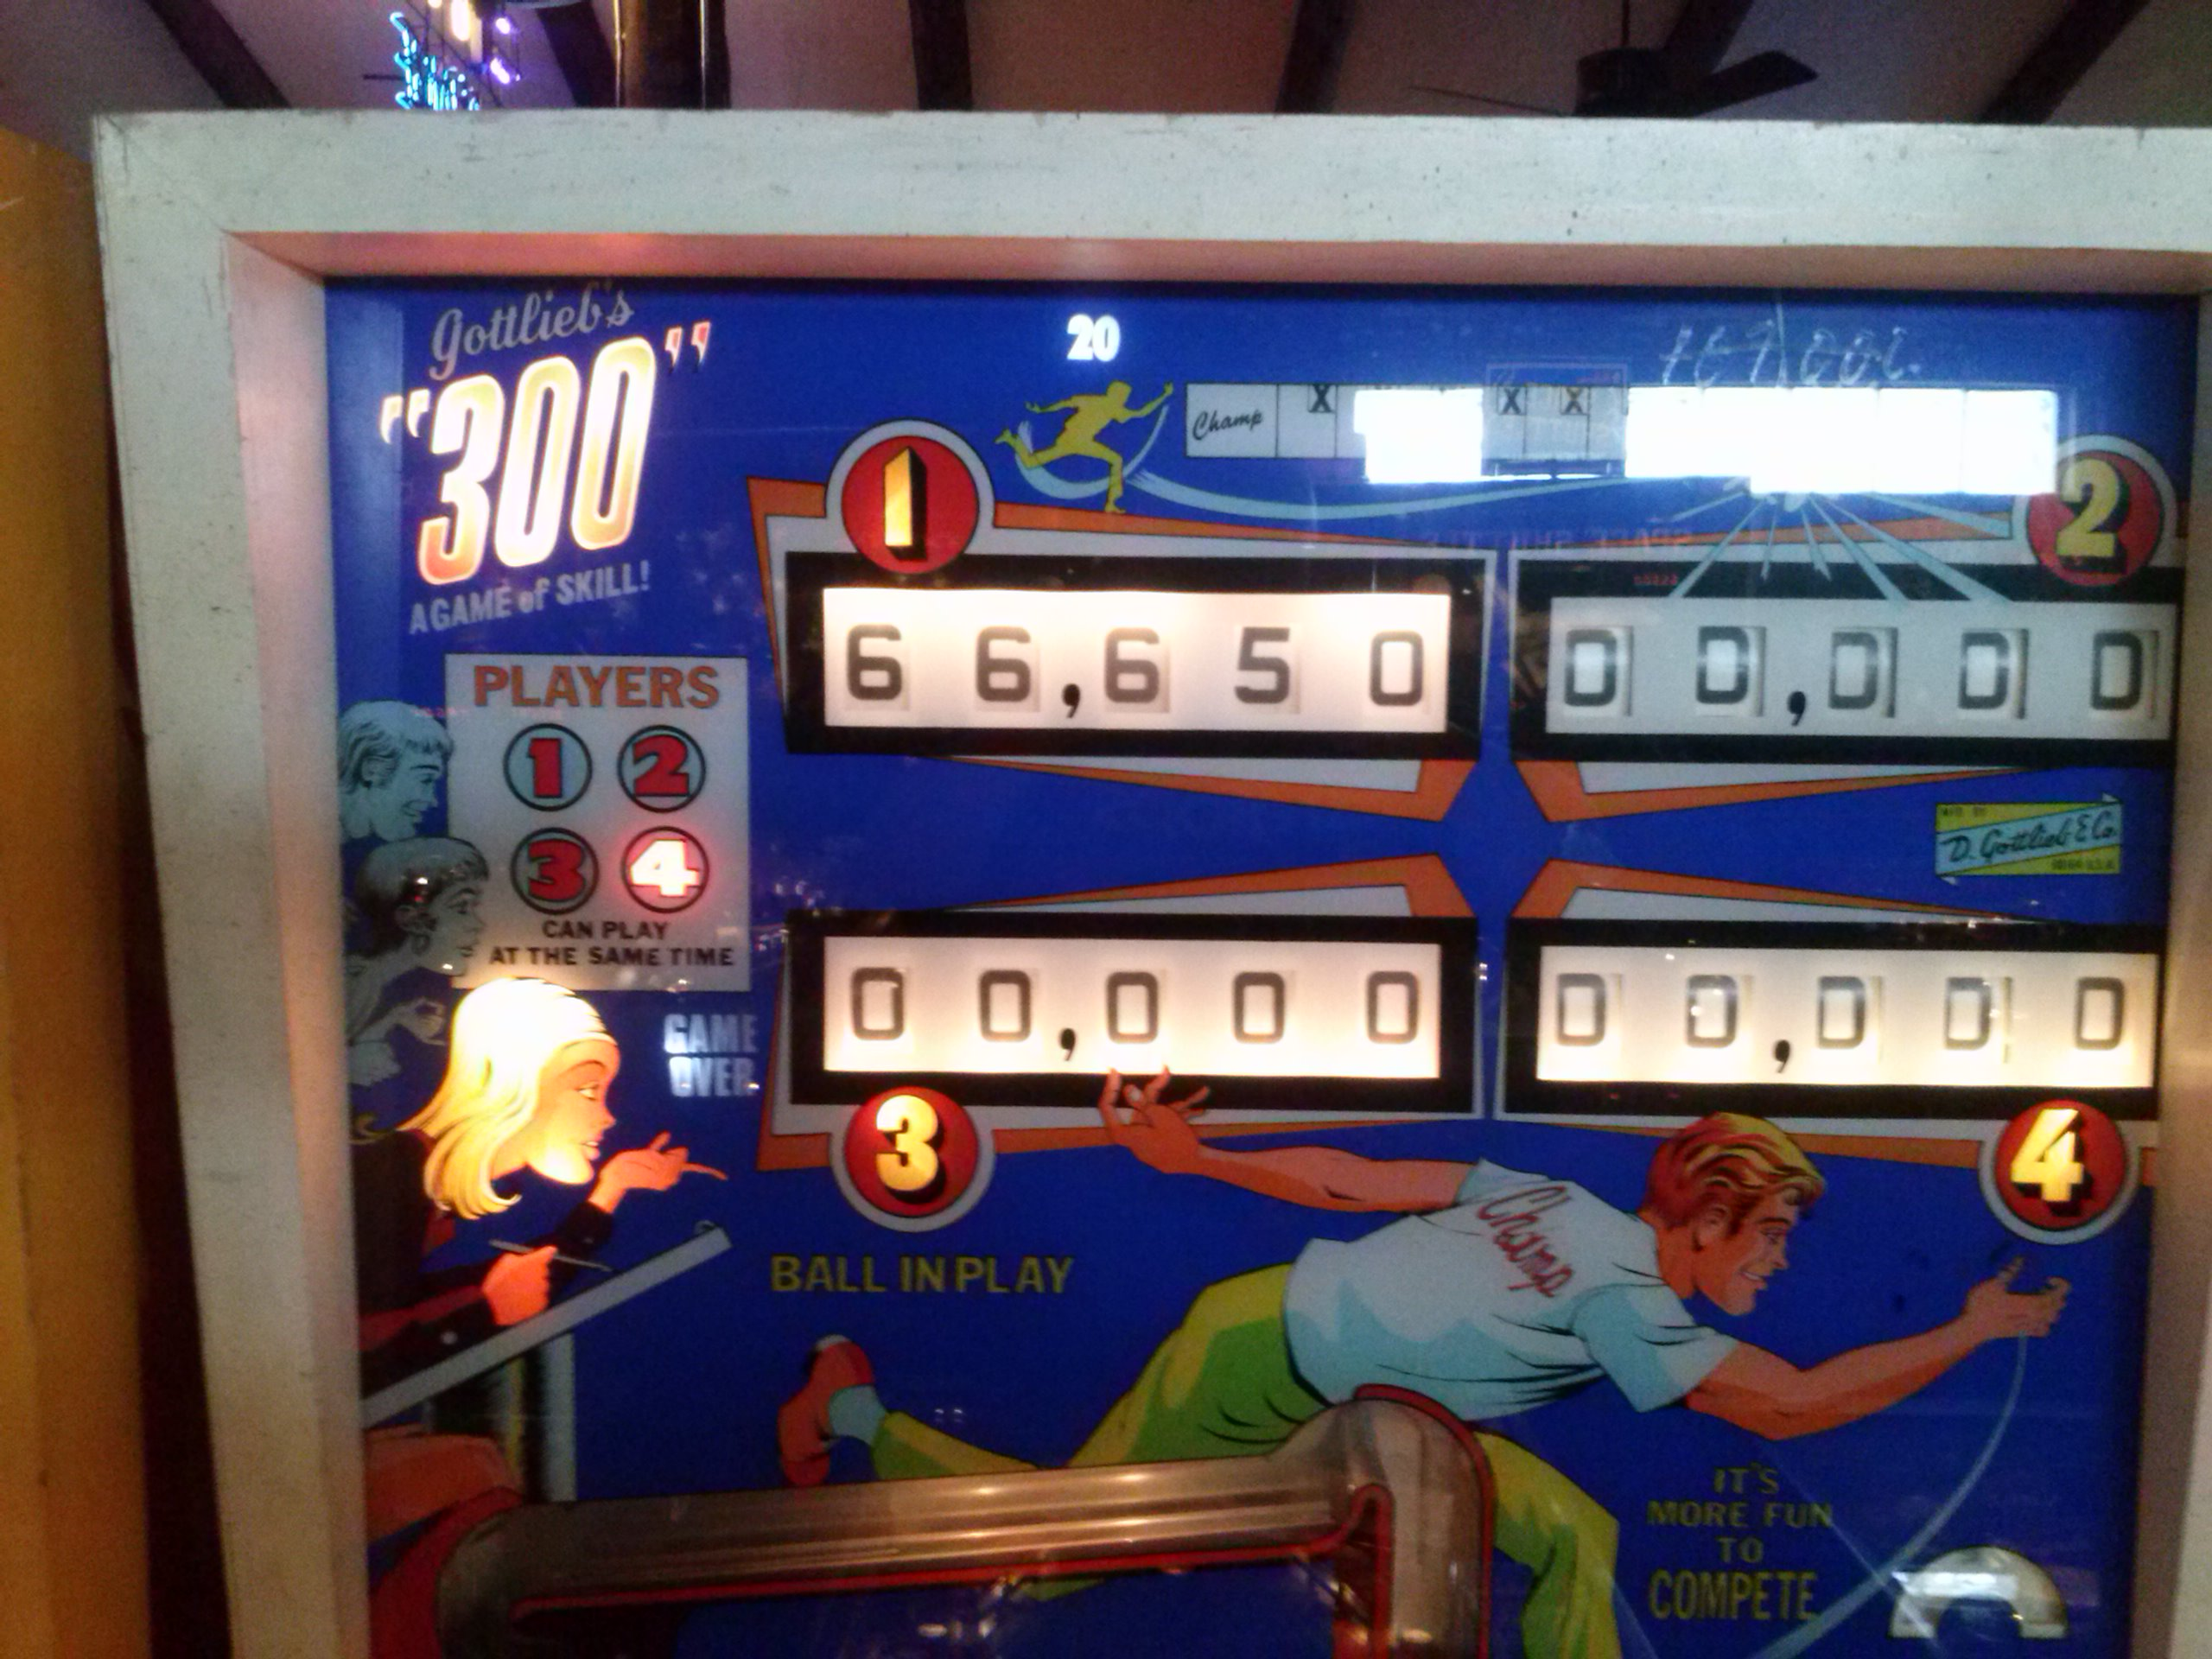 300 66,650 points